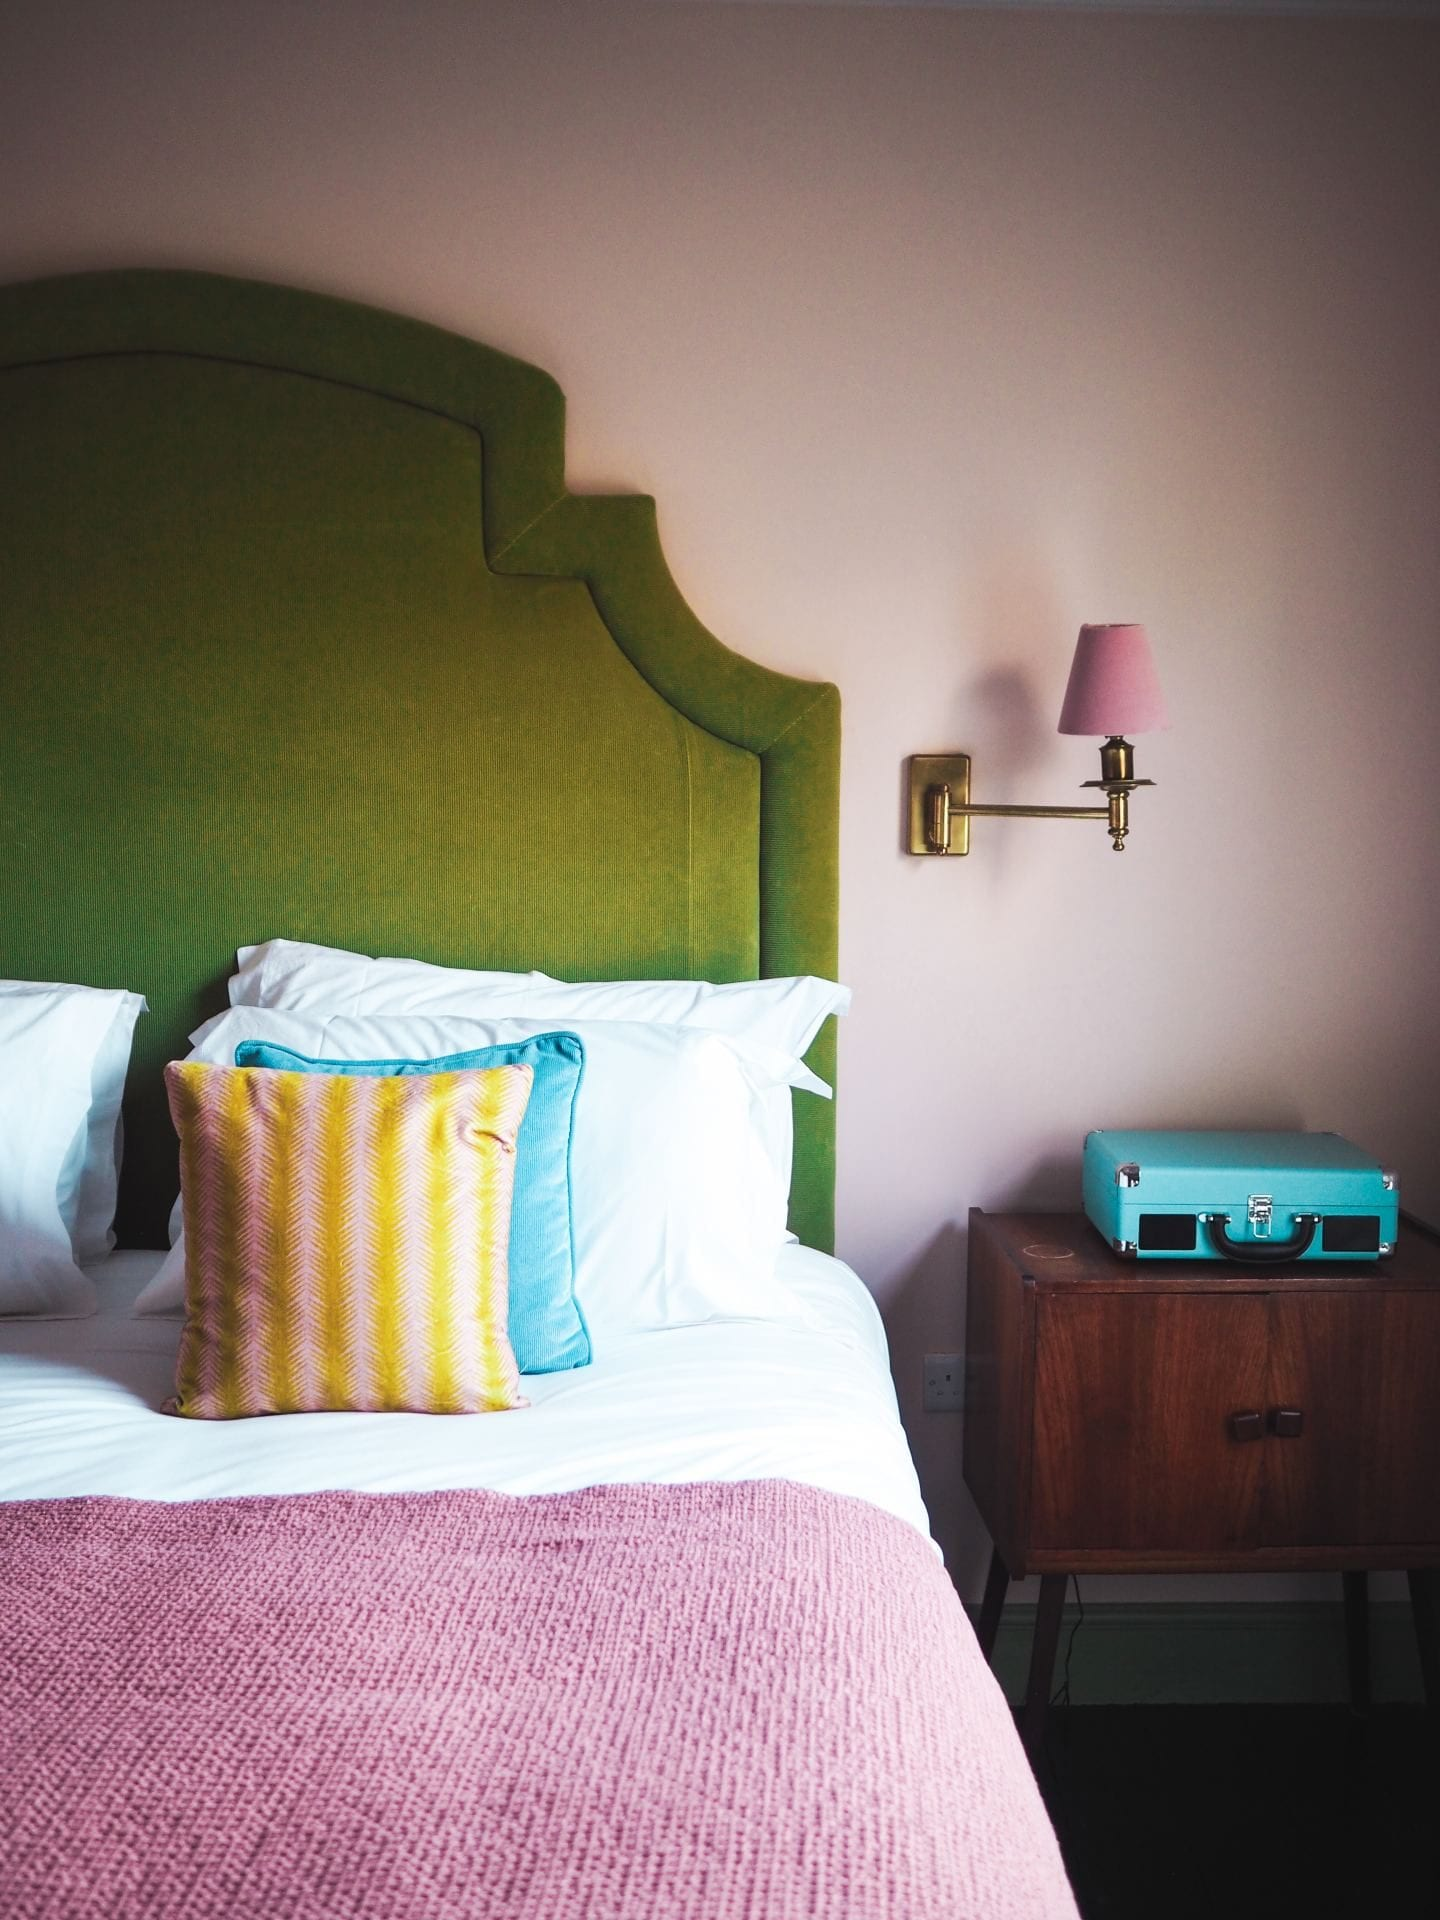 green and pink headboard bed the rose deal kent decor interior design